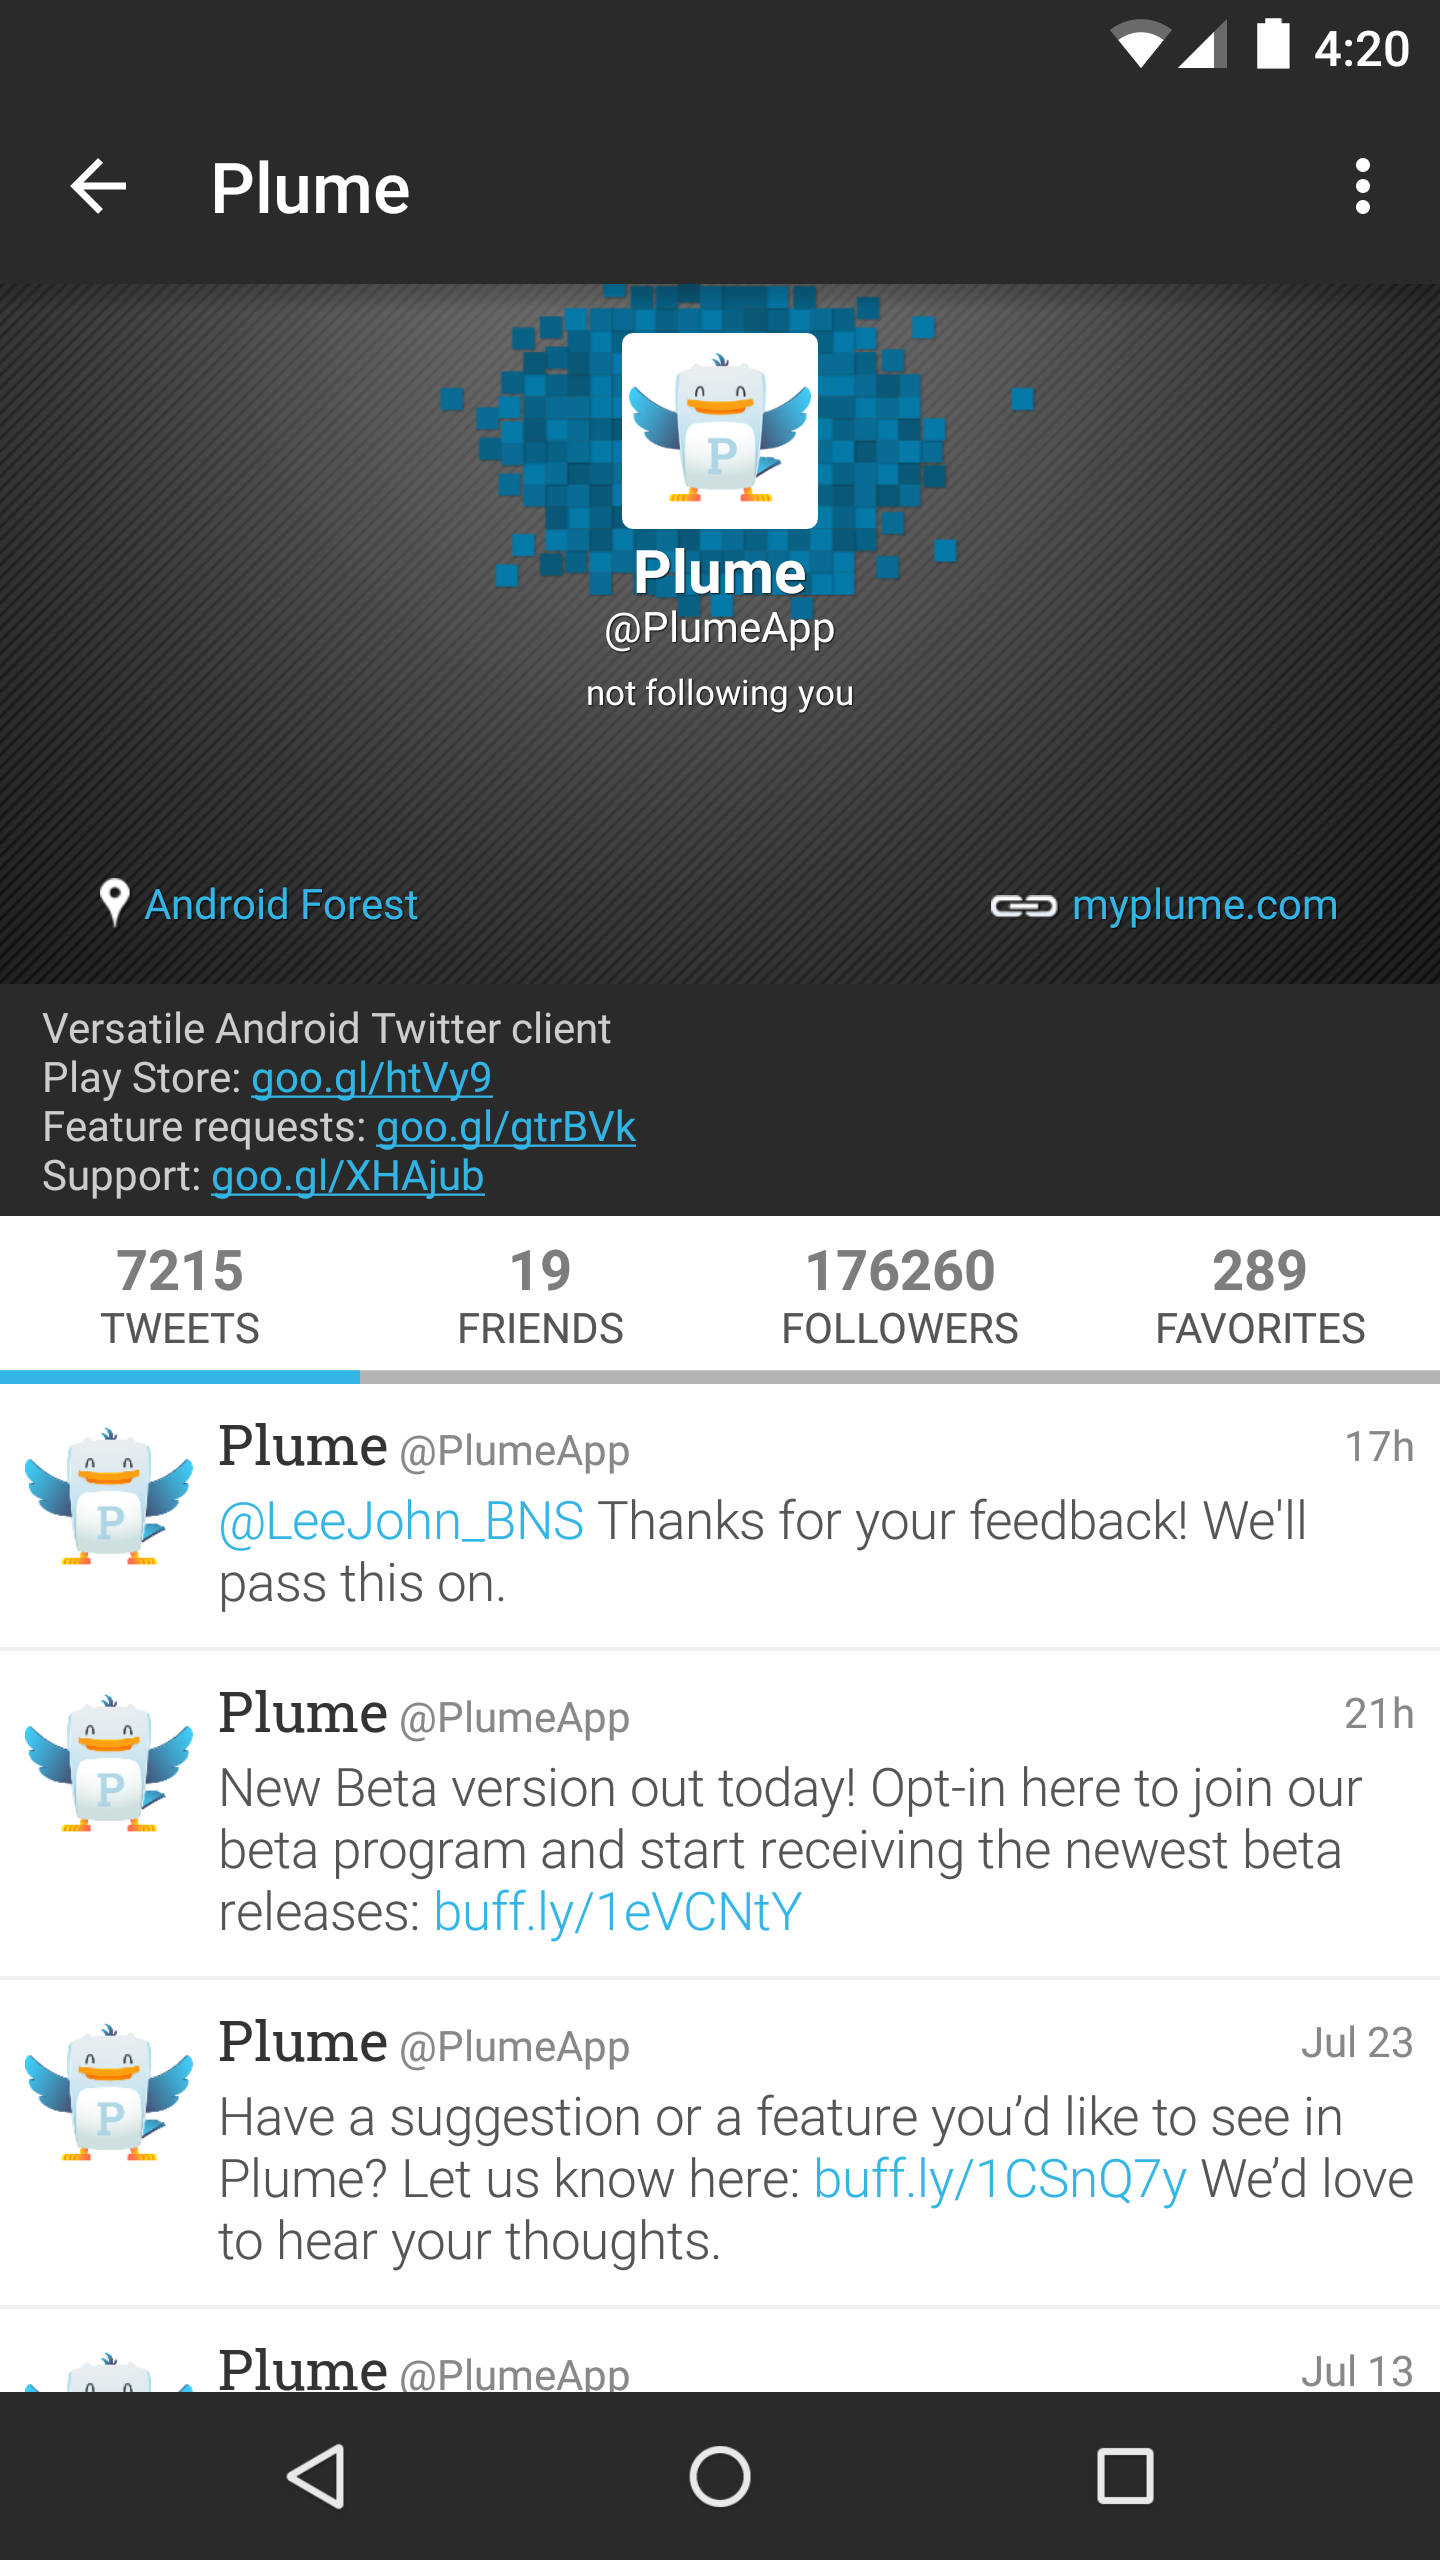 Plume for Twitter image #1